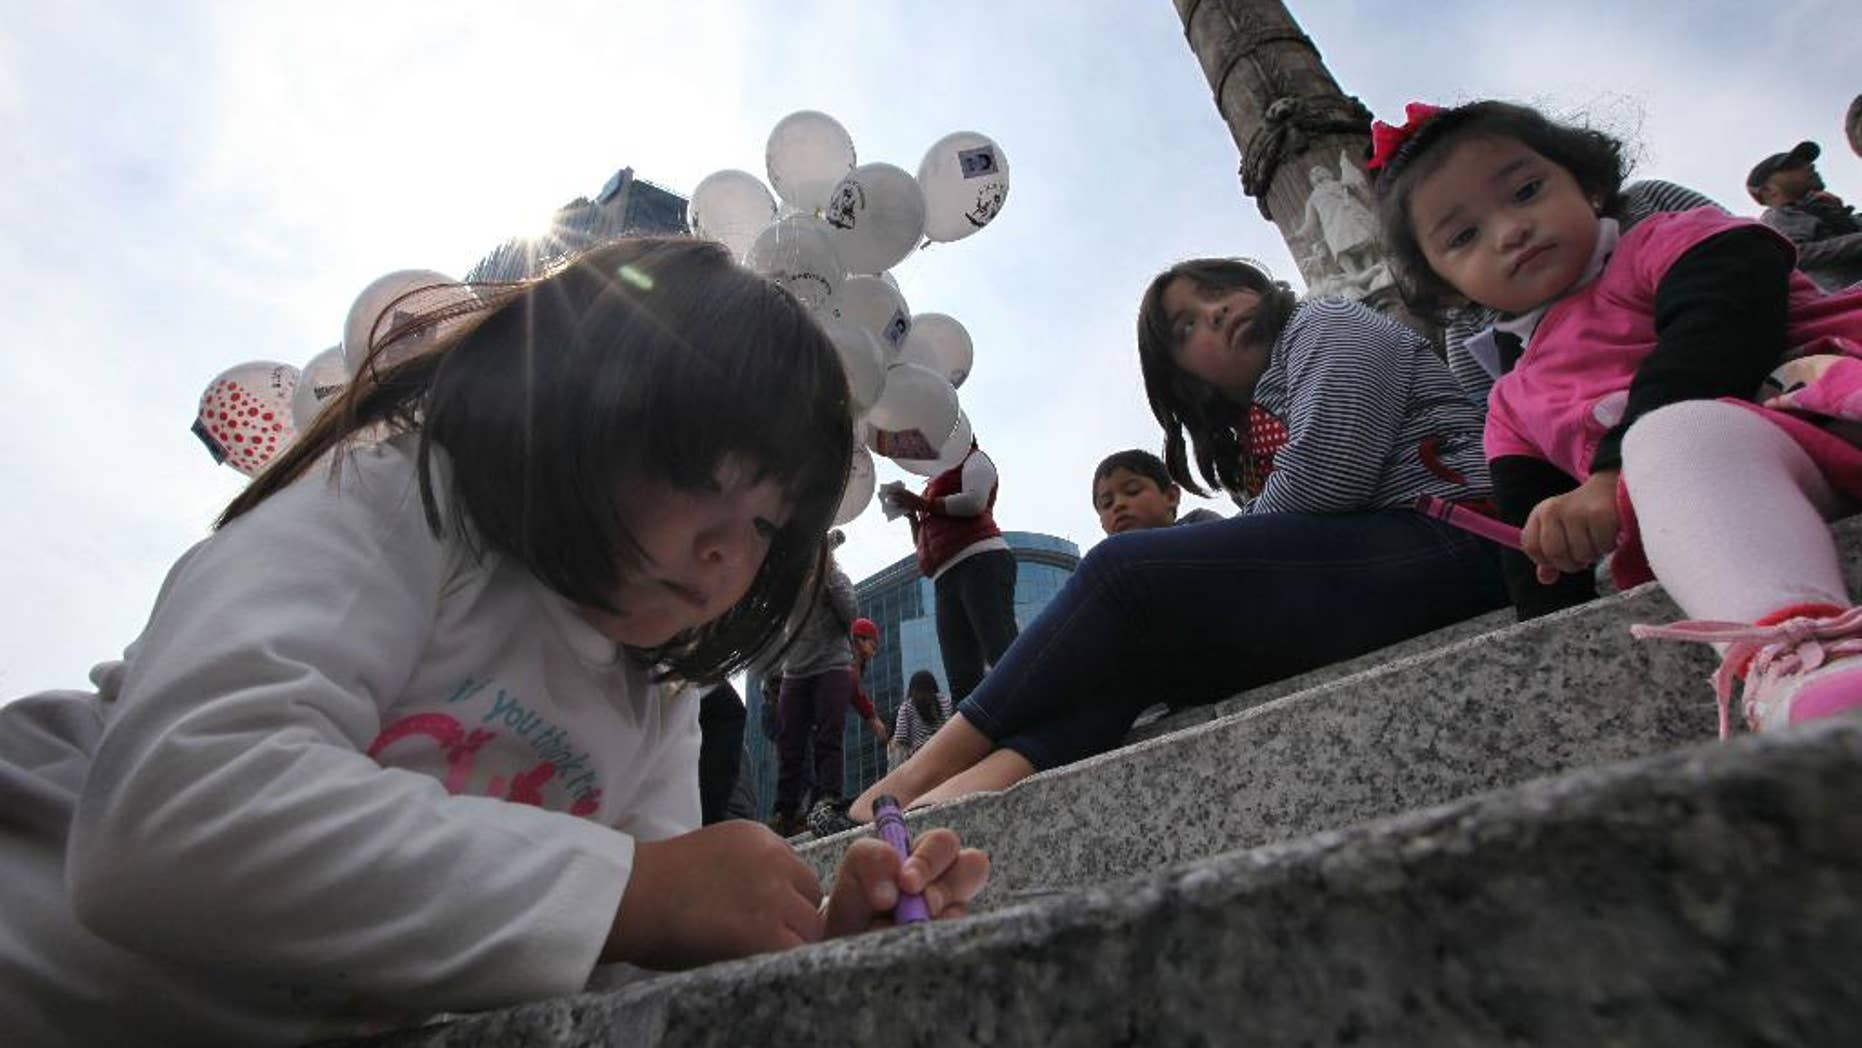 Children write letters for the feast of the Three Kings, asking for the 43 missing colleges students, in Mexico City, Sunday Jan. 4, 2015. The children along with their parents sent letters asking for the well being of the students that went missing after a clash with the local police of the town of Iguala on Southern Guerrero state, on Sept. 26, 2014. (AP Photo/Marco Ugarte)